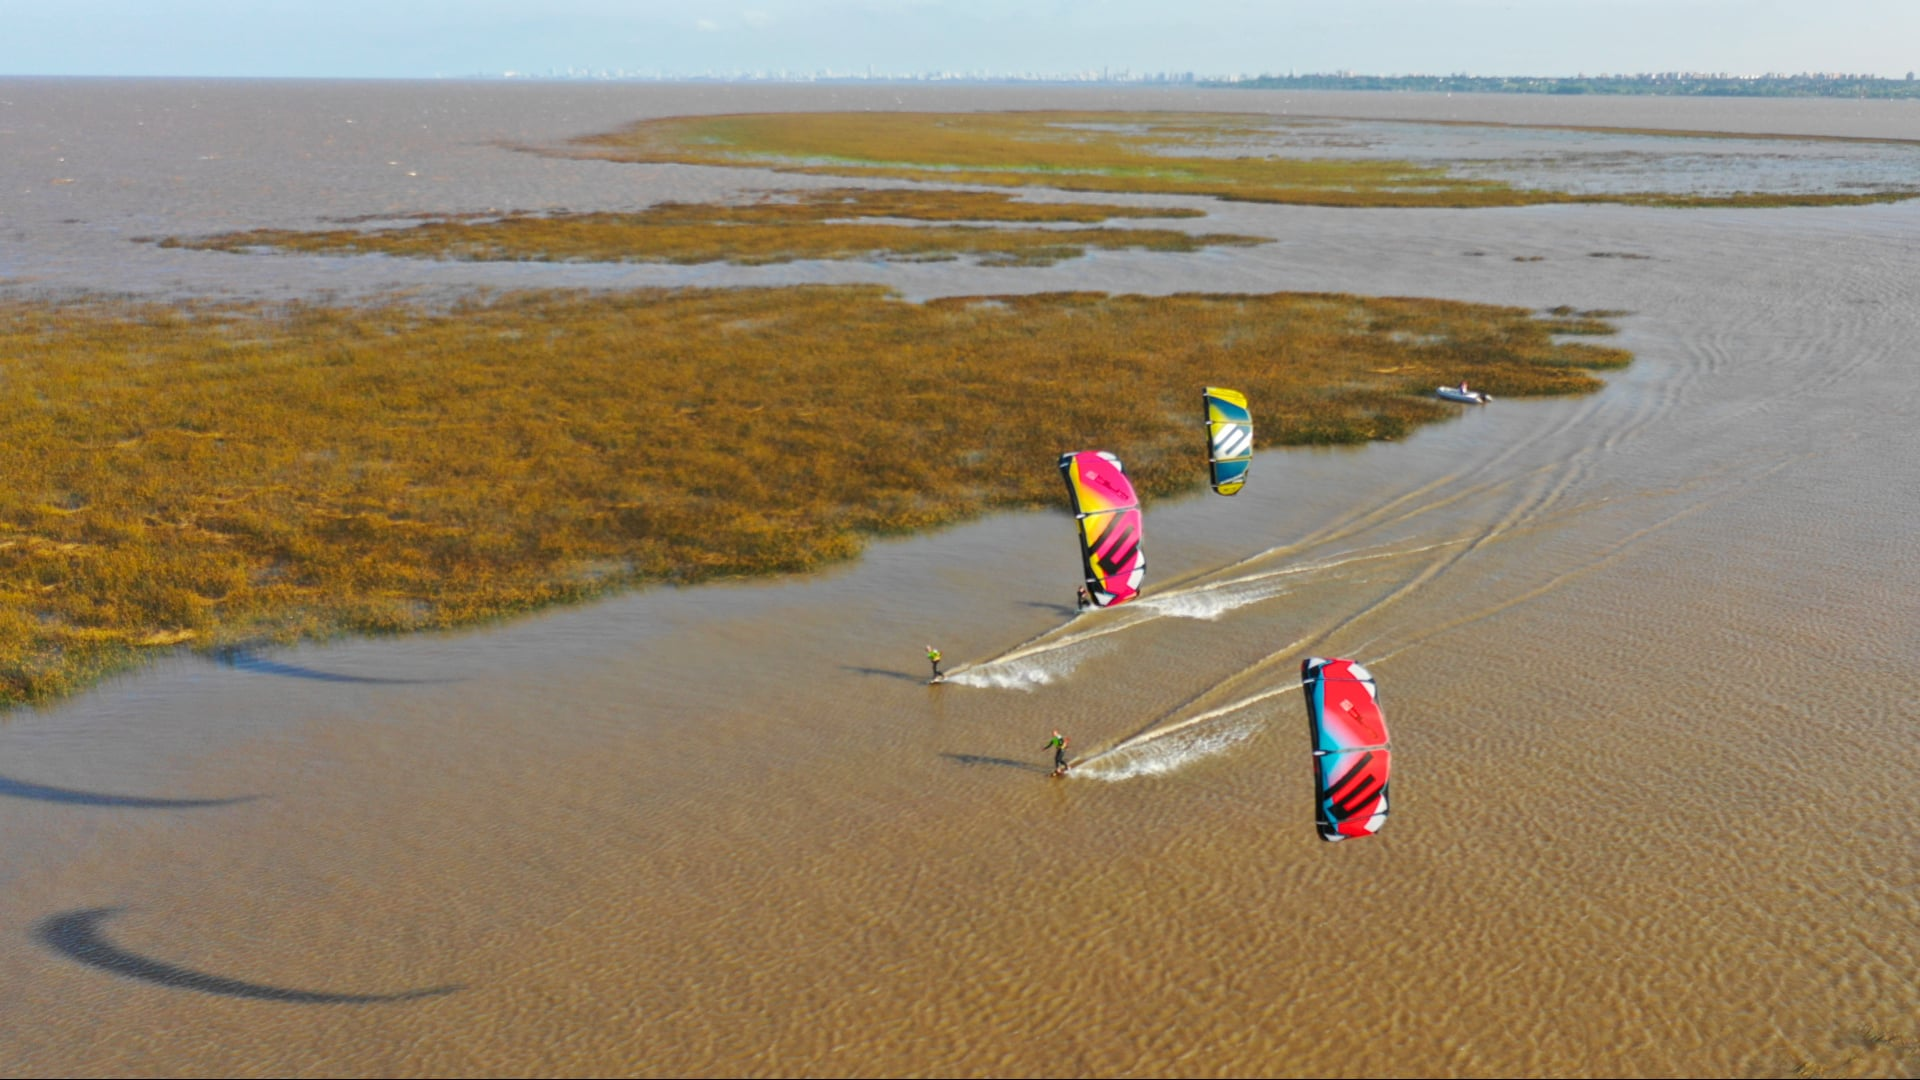 Dumb & Dumber kiting in Argentina - with Epic Kites Kiteboarding